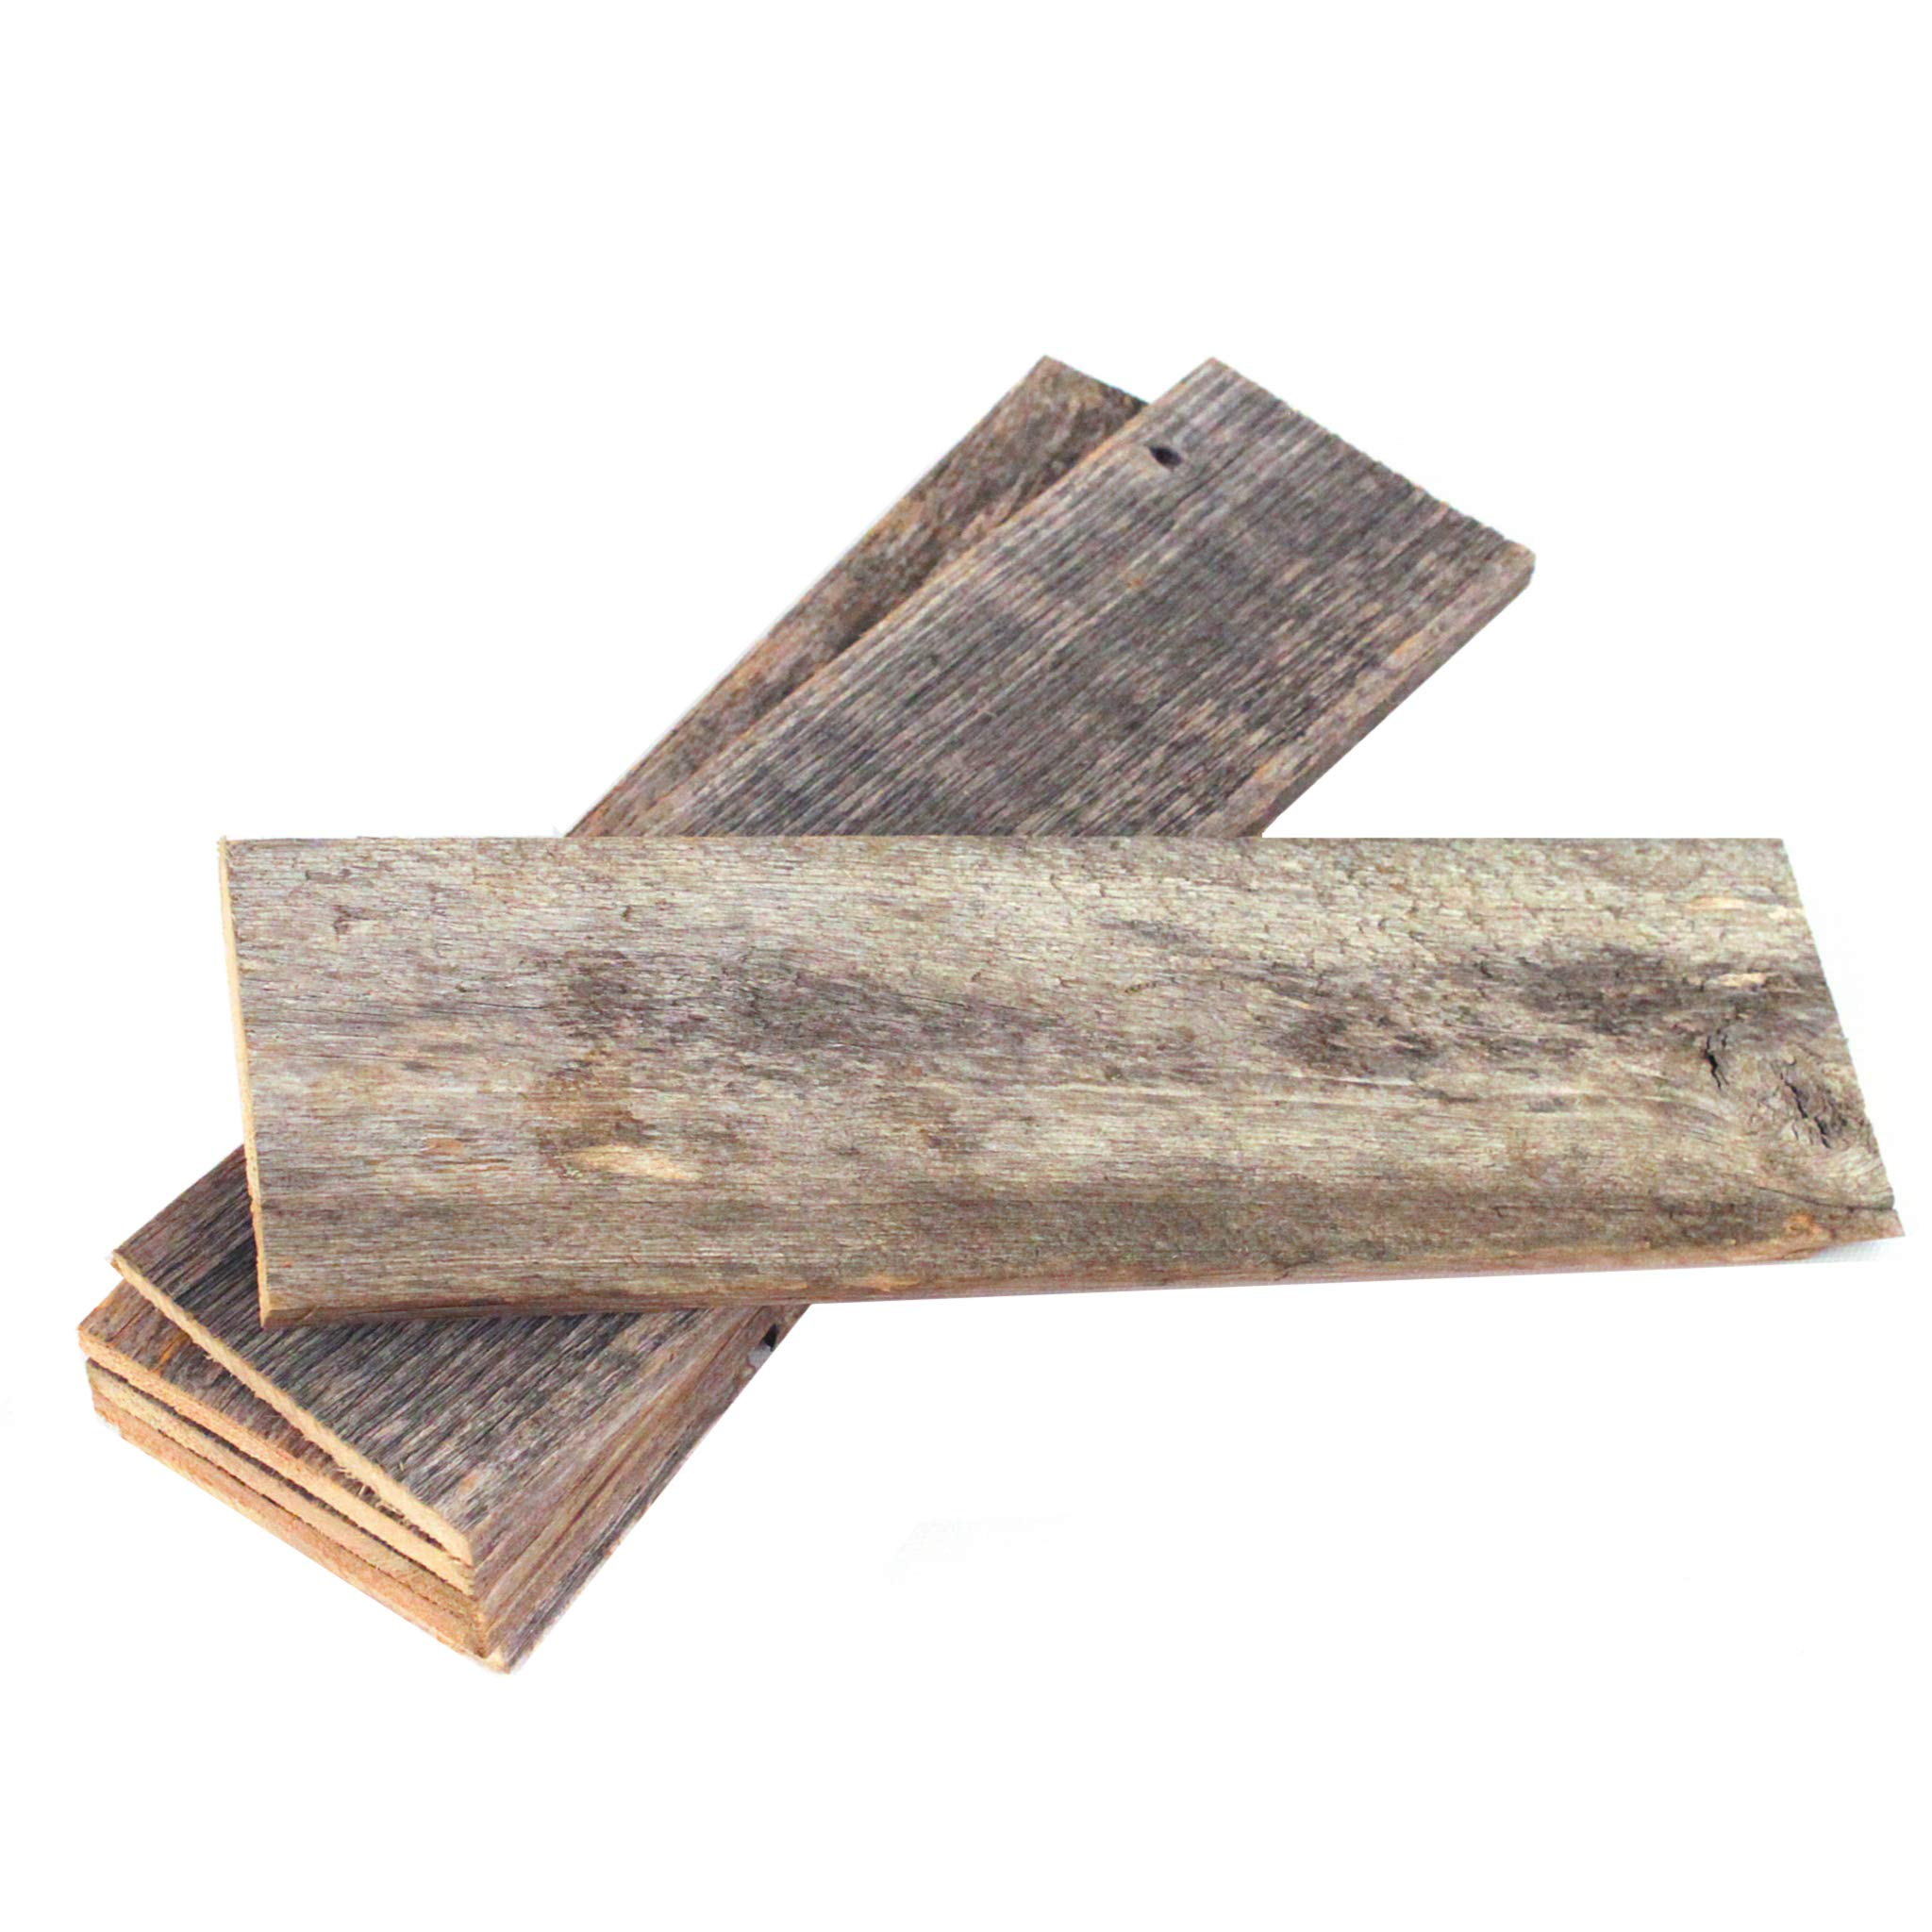 Rustic Farmhouse Reclaimed Barn Wood Bundle   Remodeling   Weathered   DIY   Repurposed   Decoration   Shiplap   Wall   Pack of 6 (60 in) Thin Planks by BarnwoodUSA LLC